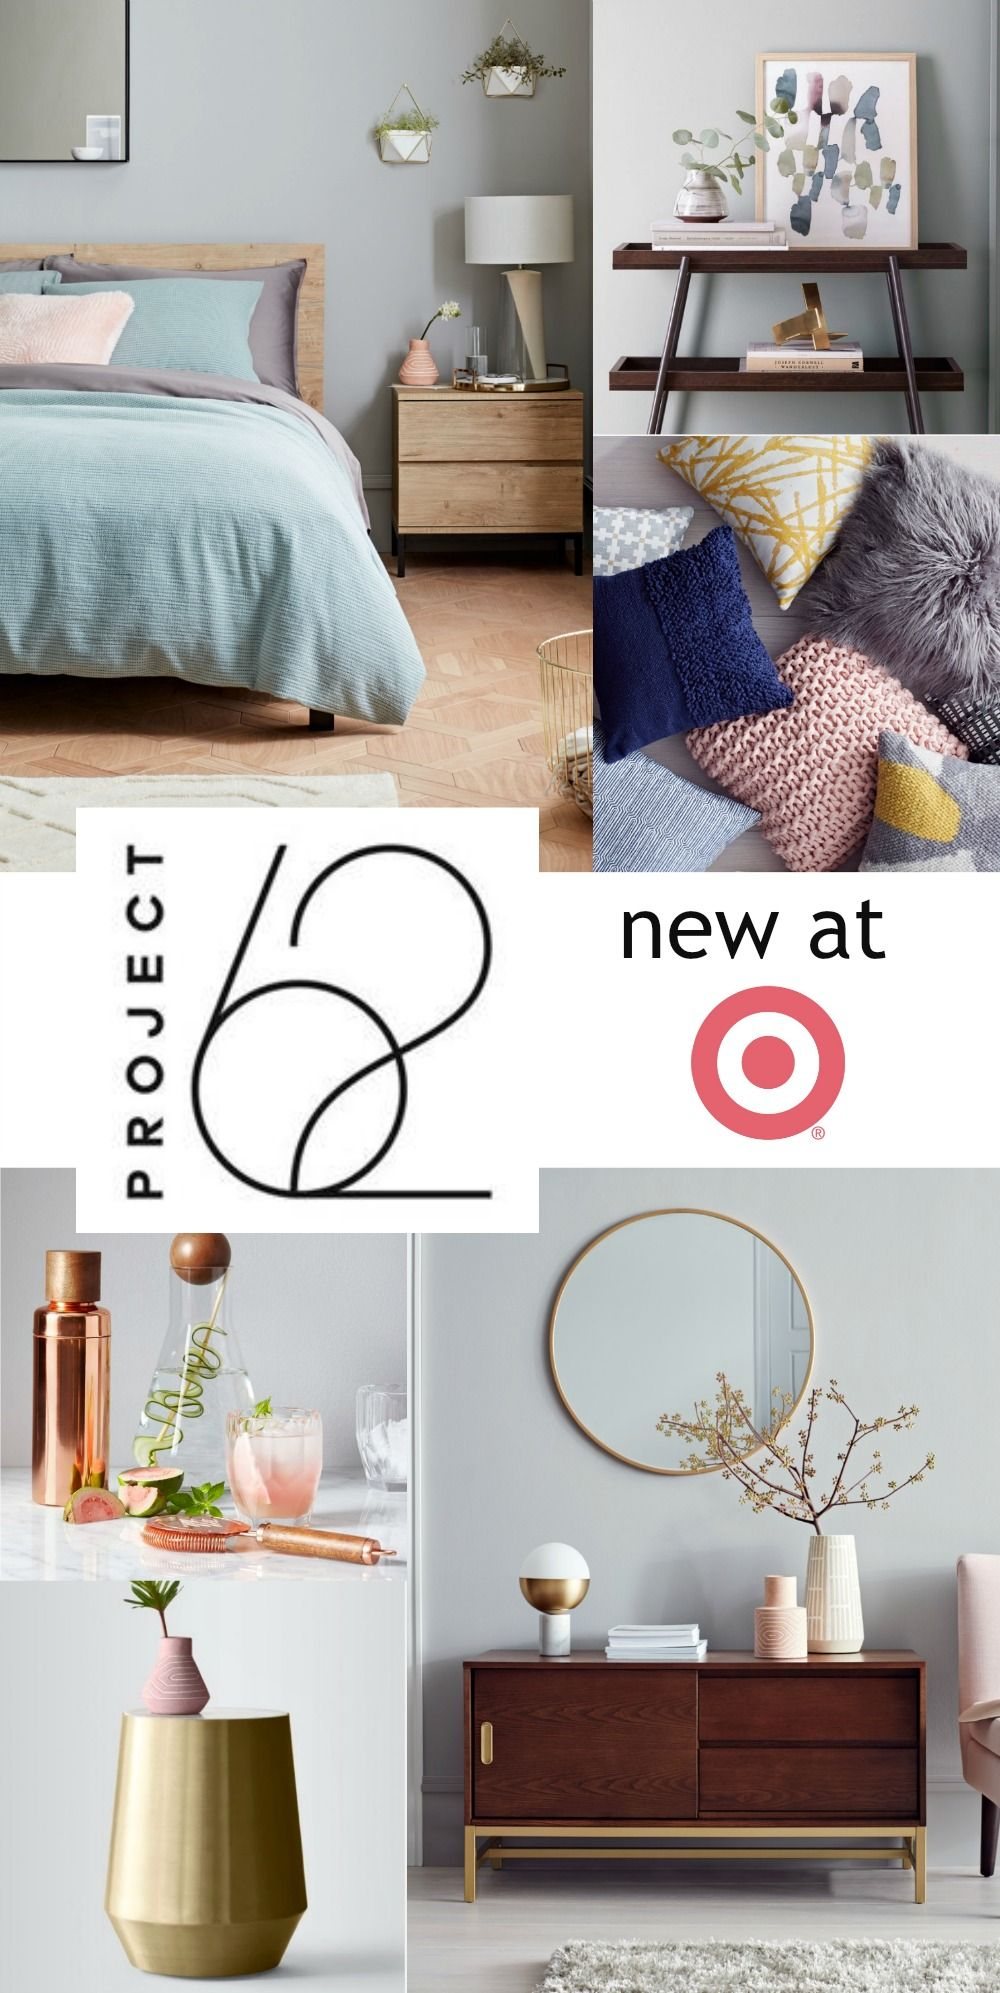 Target Debuts New Project 62 Furniture And Home Decor And We Love It Target Home Decor Home Decor Decor